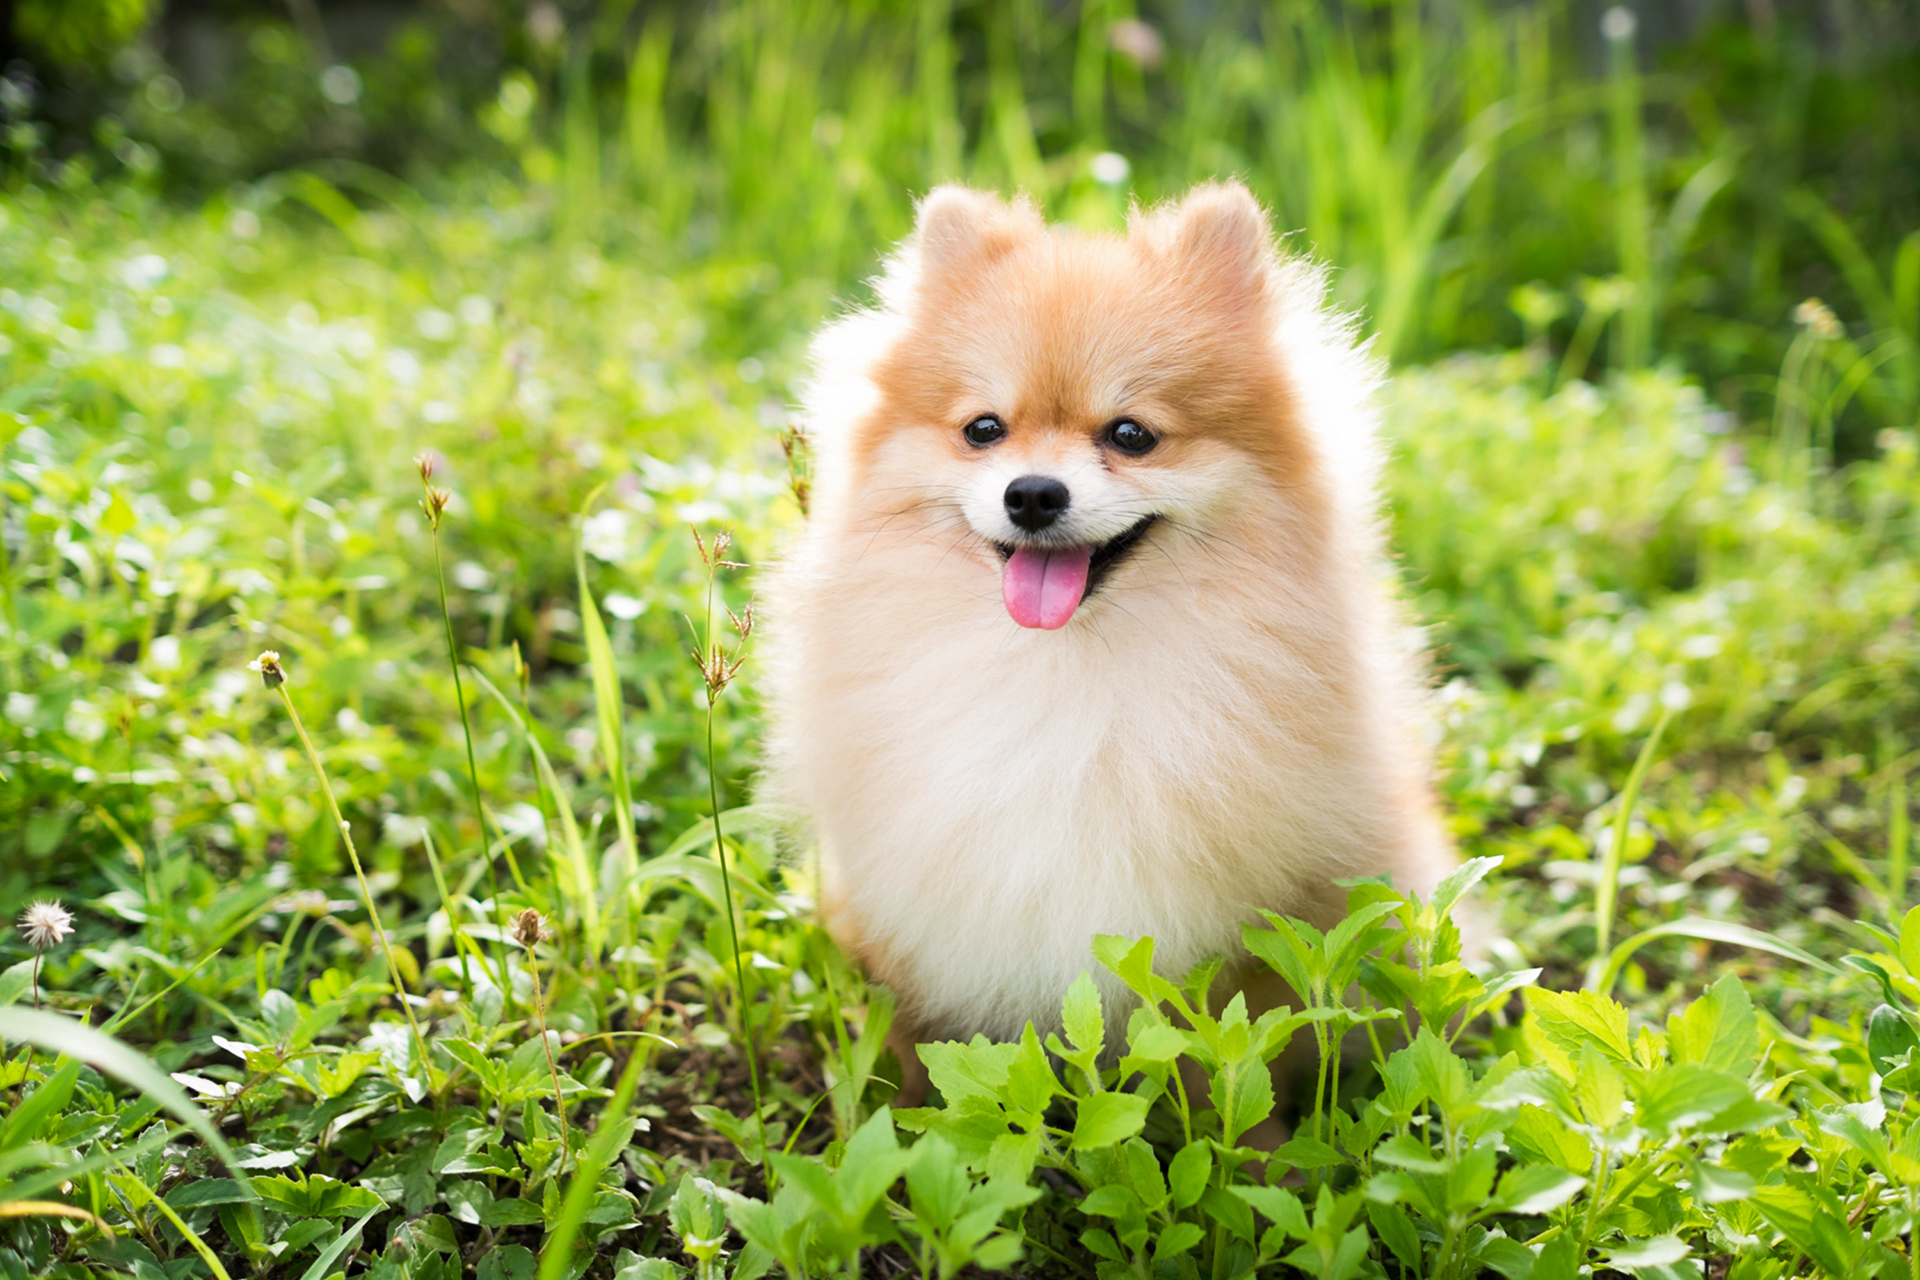 pomeranian dog sitting in grass